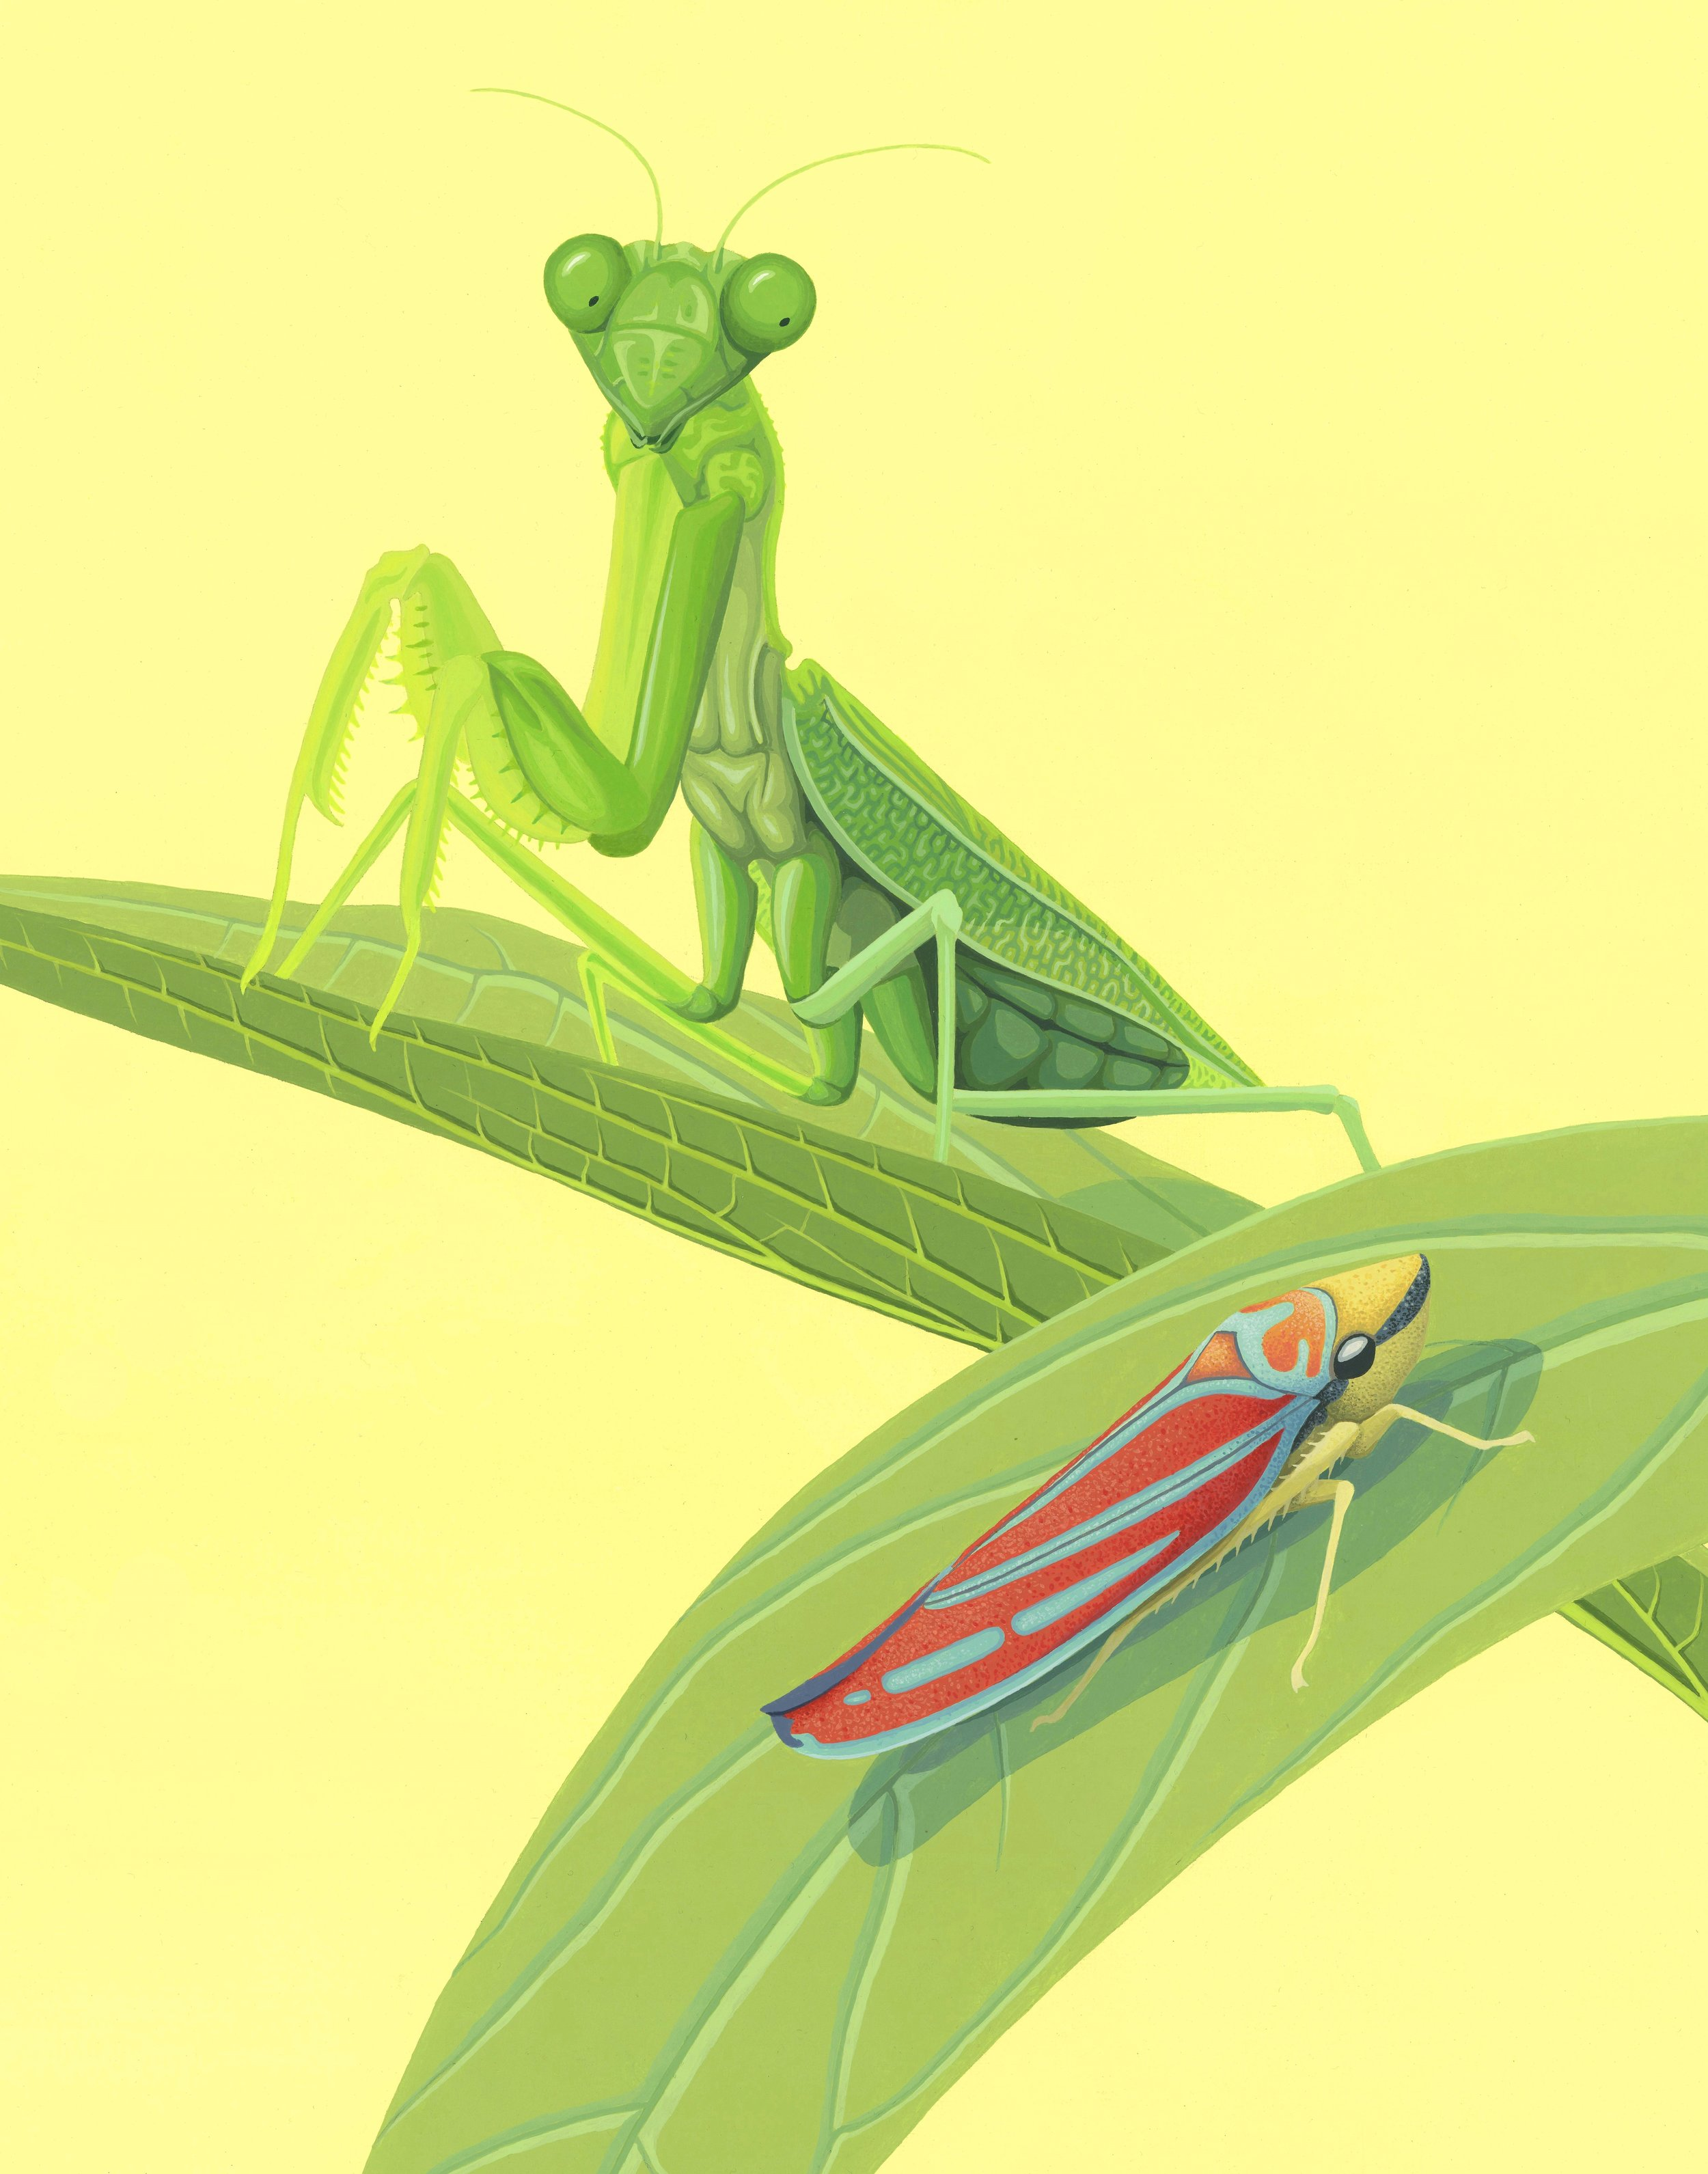 Mantis and Leafhopper